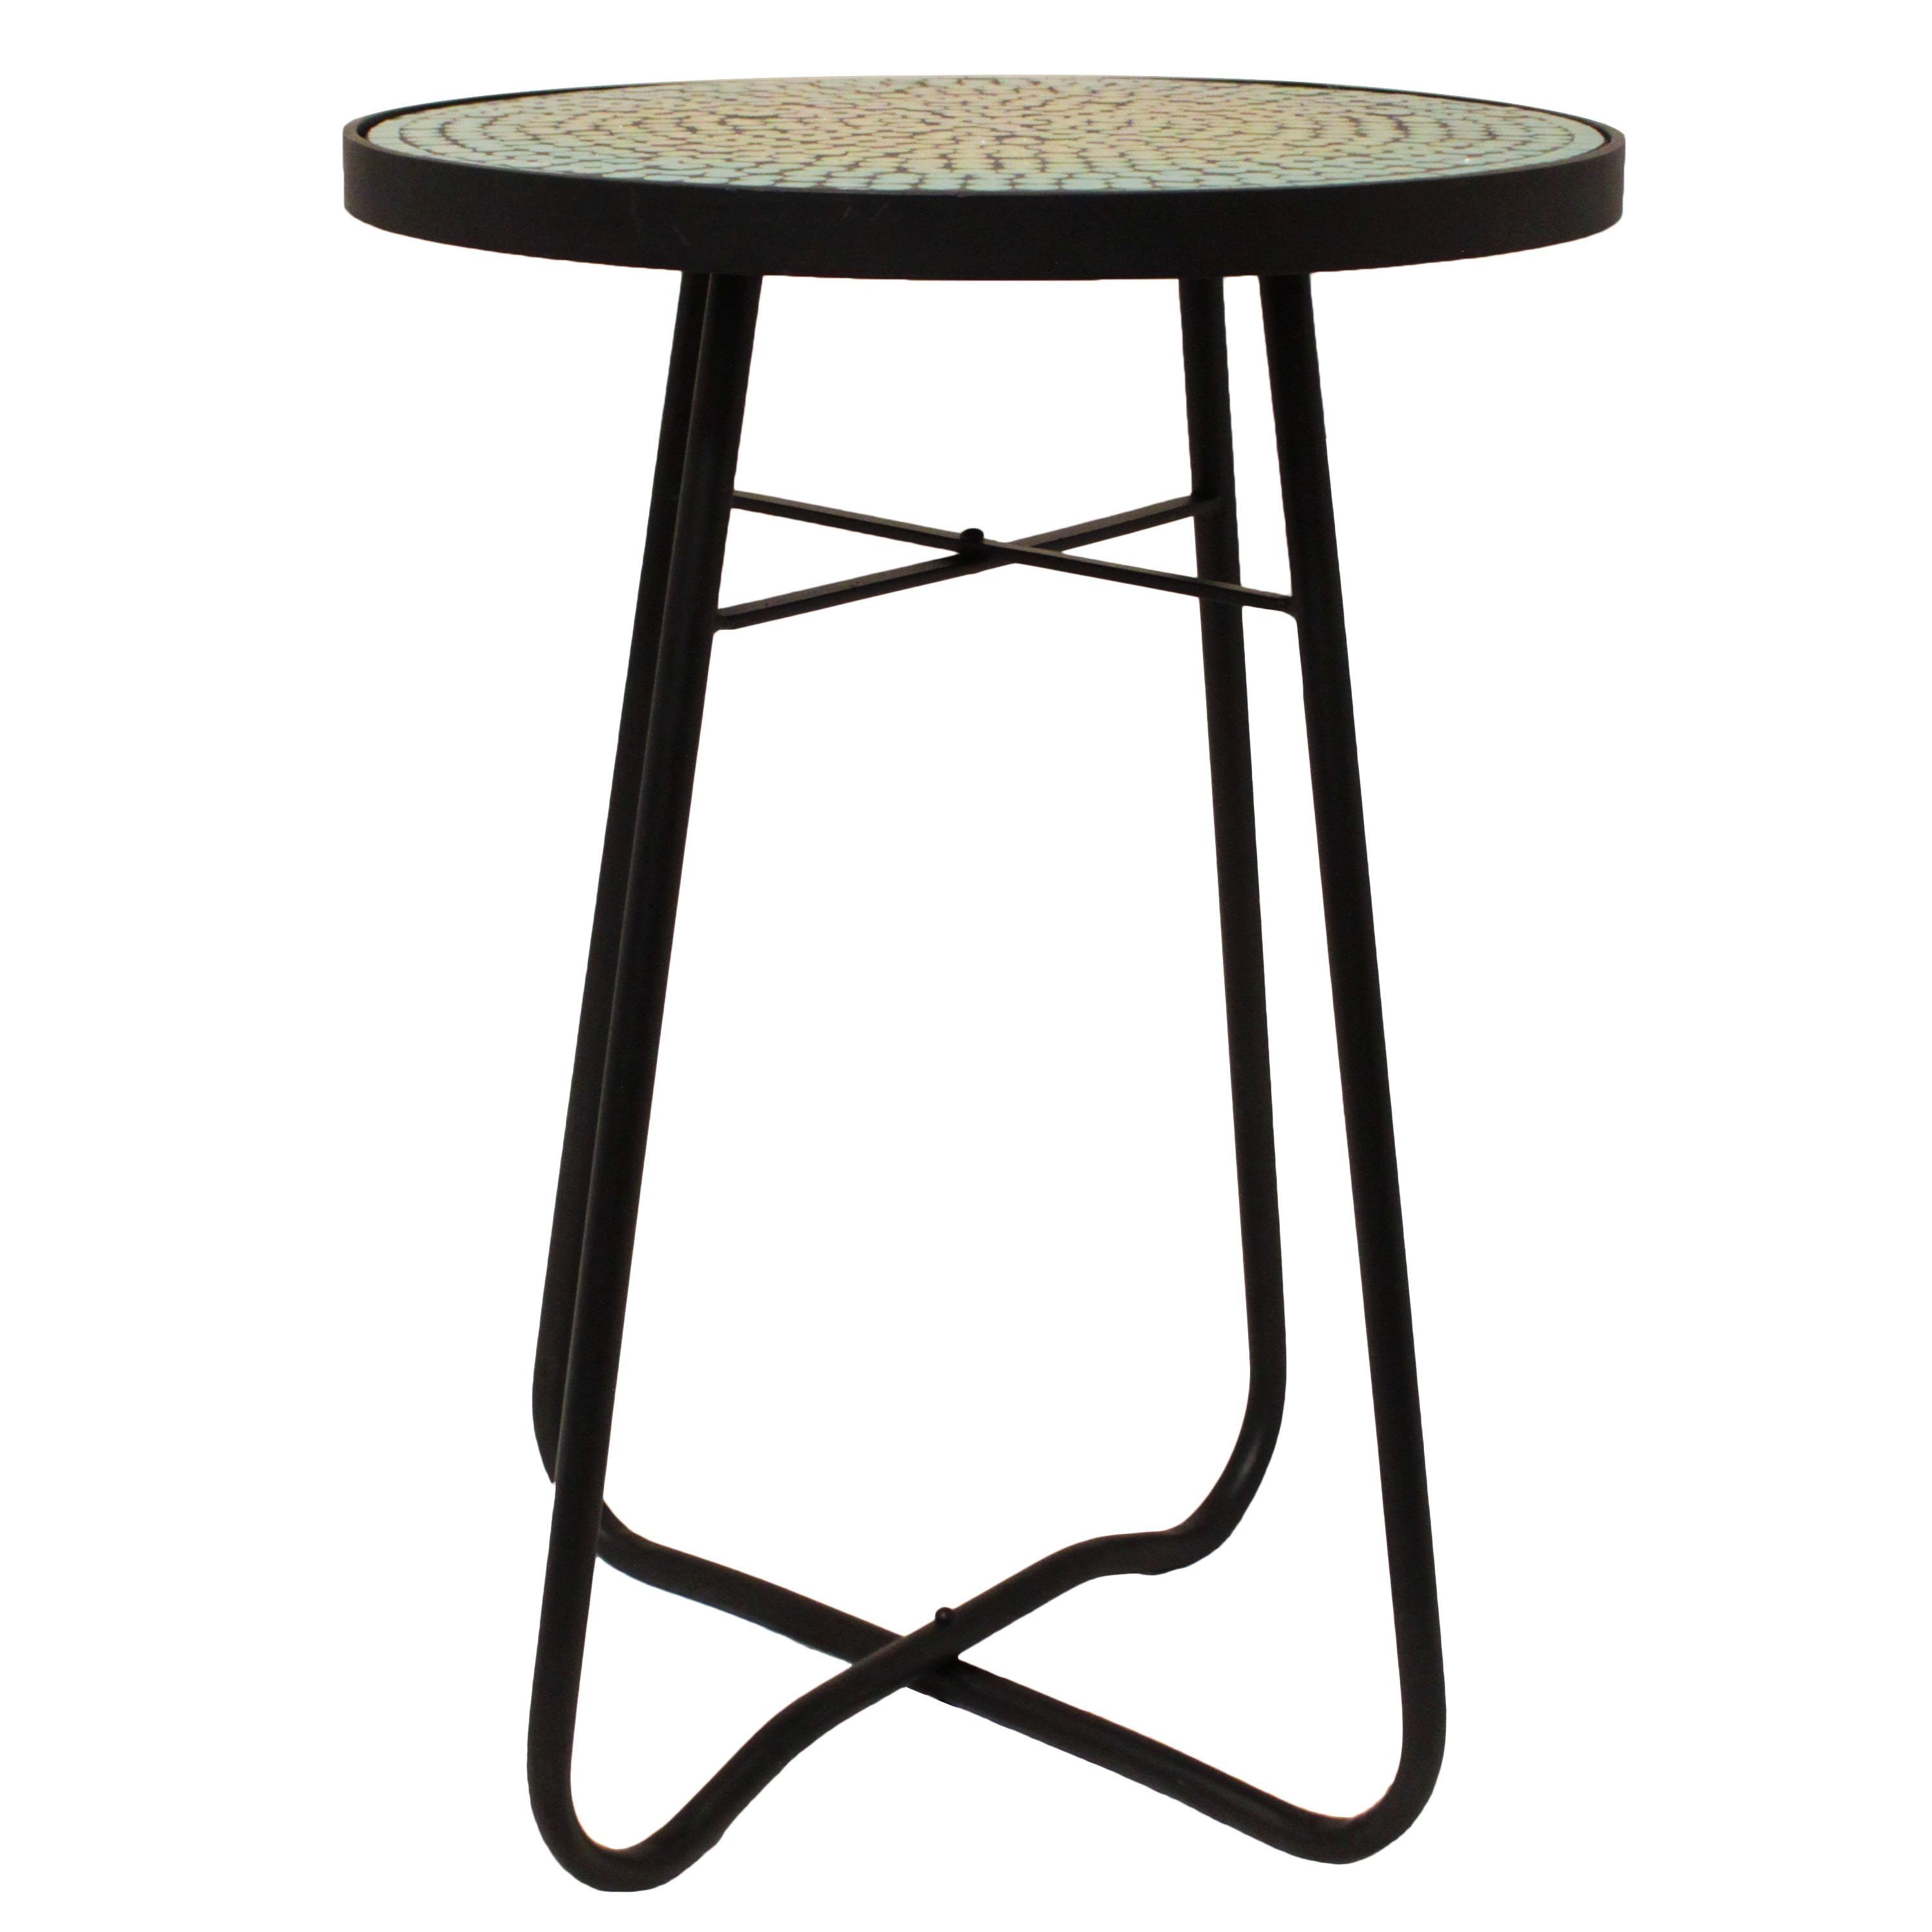 turquoise mosaic round patio side accent table free shipping today outdoor cooking dining room runners kitchen diner oval marble retro style chairs wicker chair designer lamp